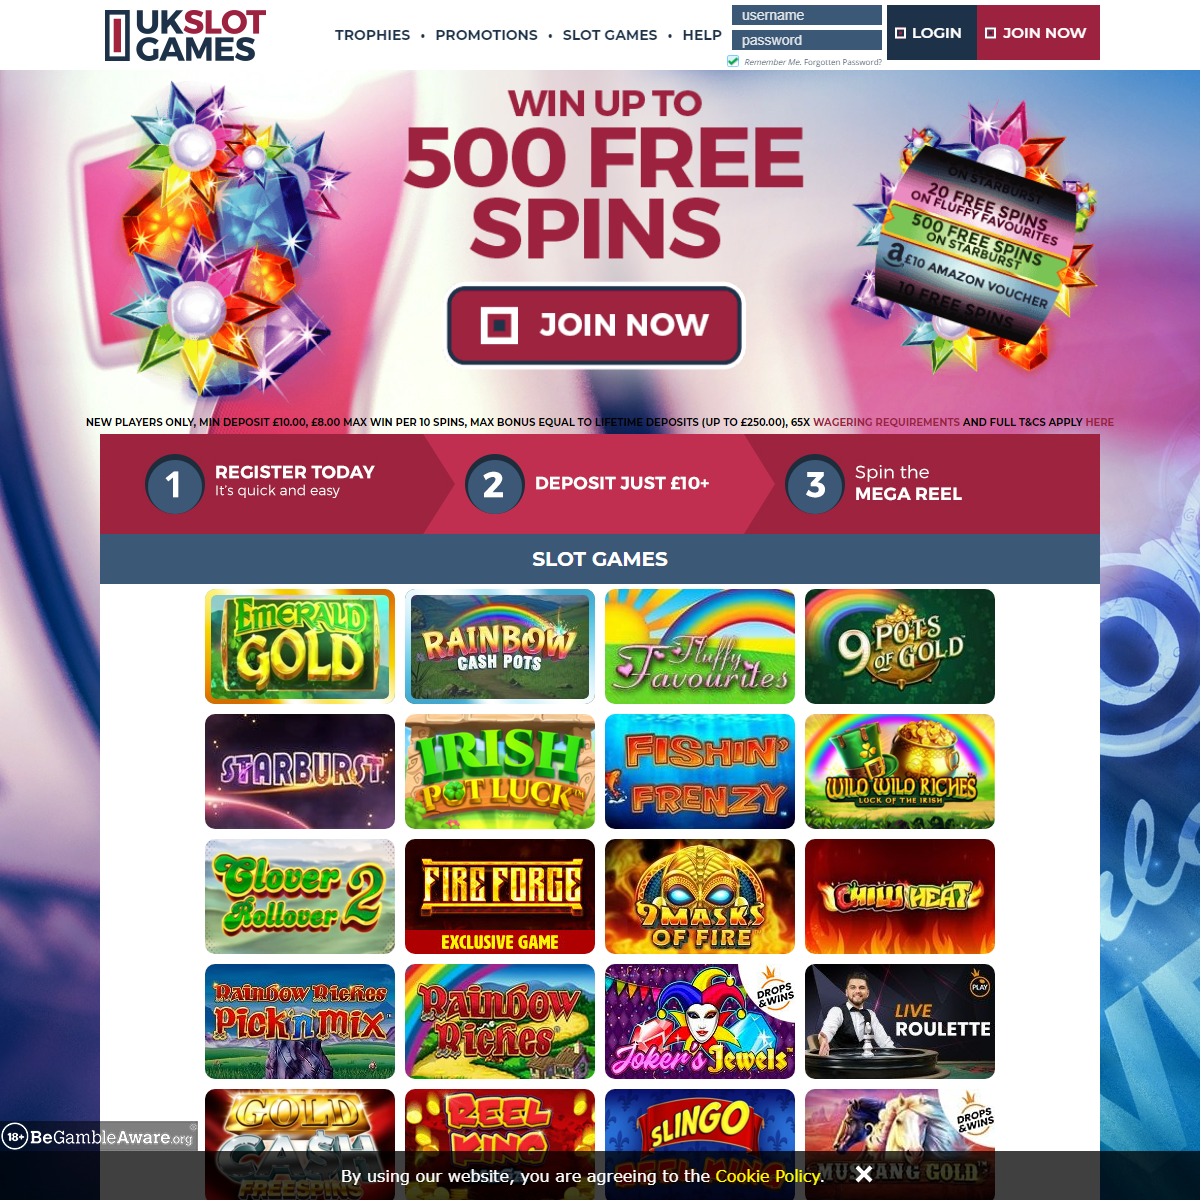 UK Slots Games - 500 Free Spins - Play Now